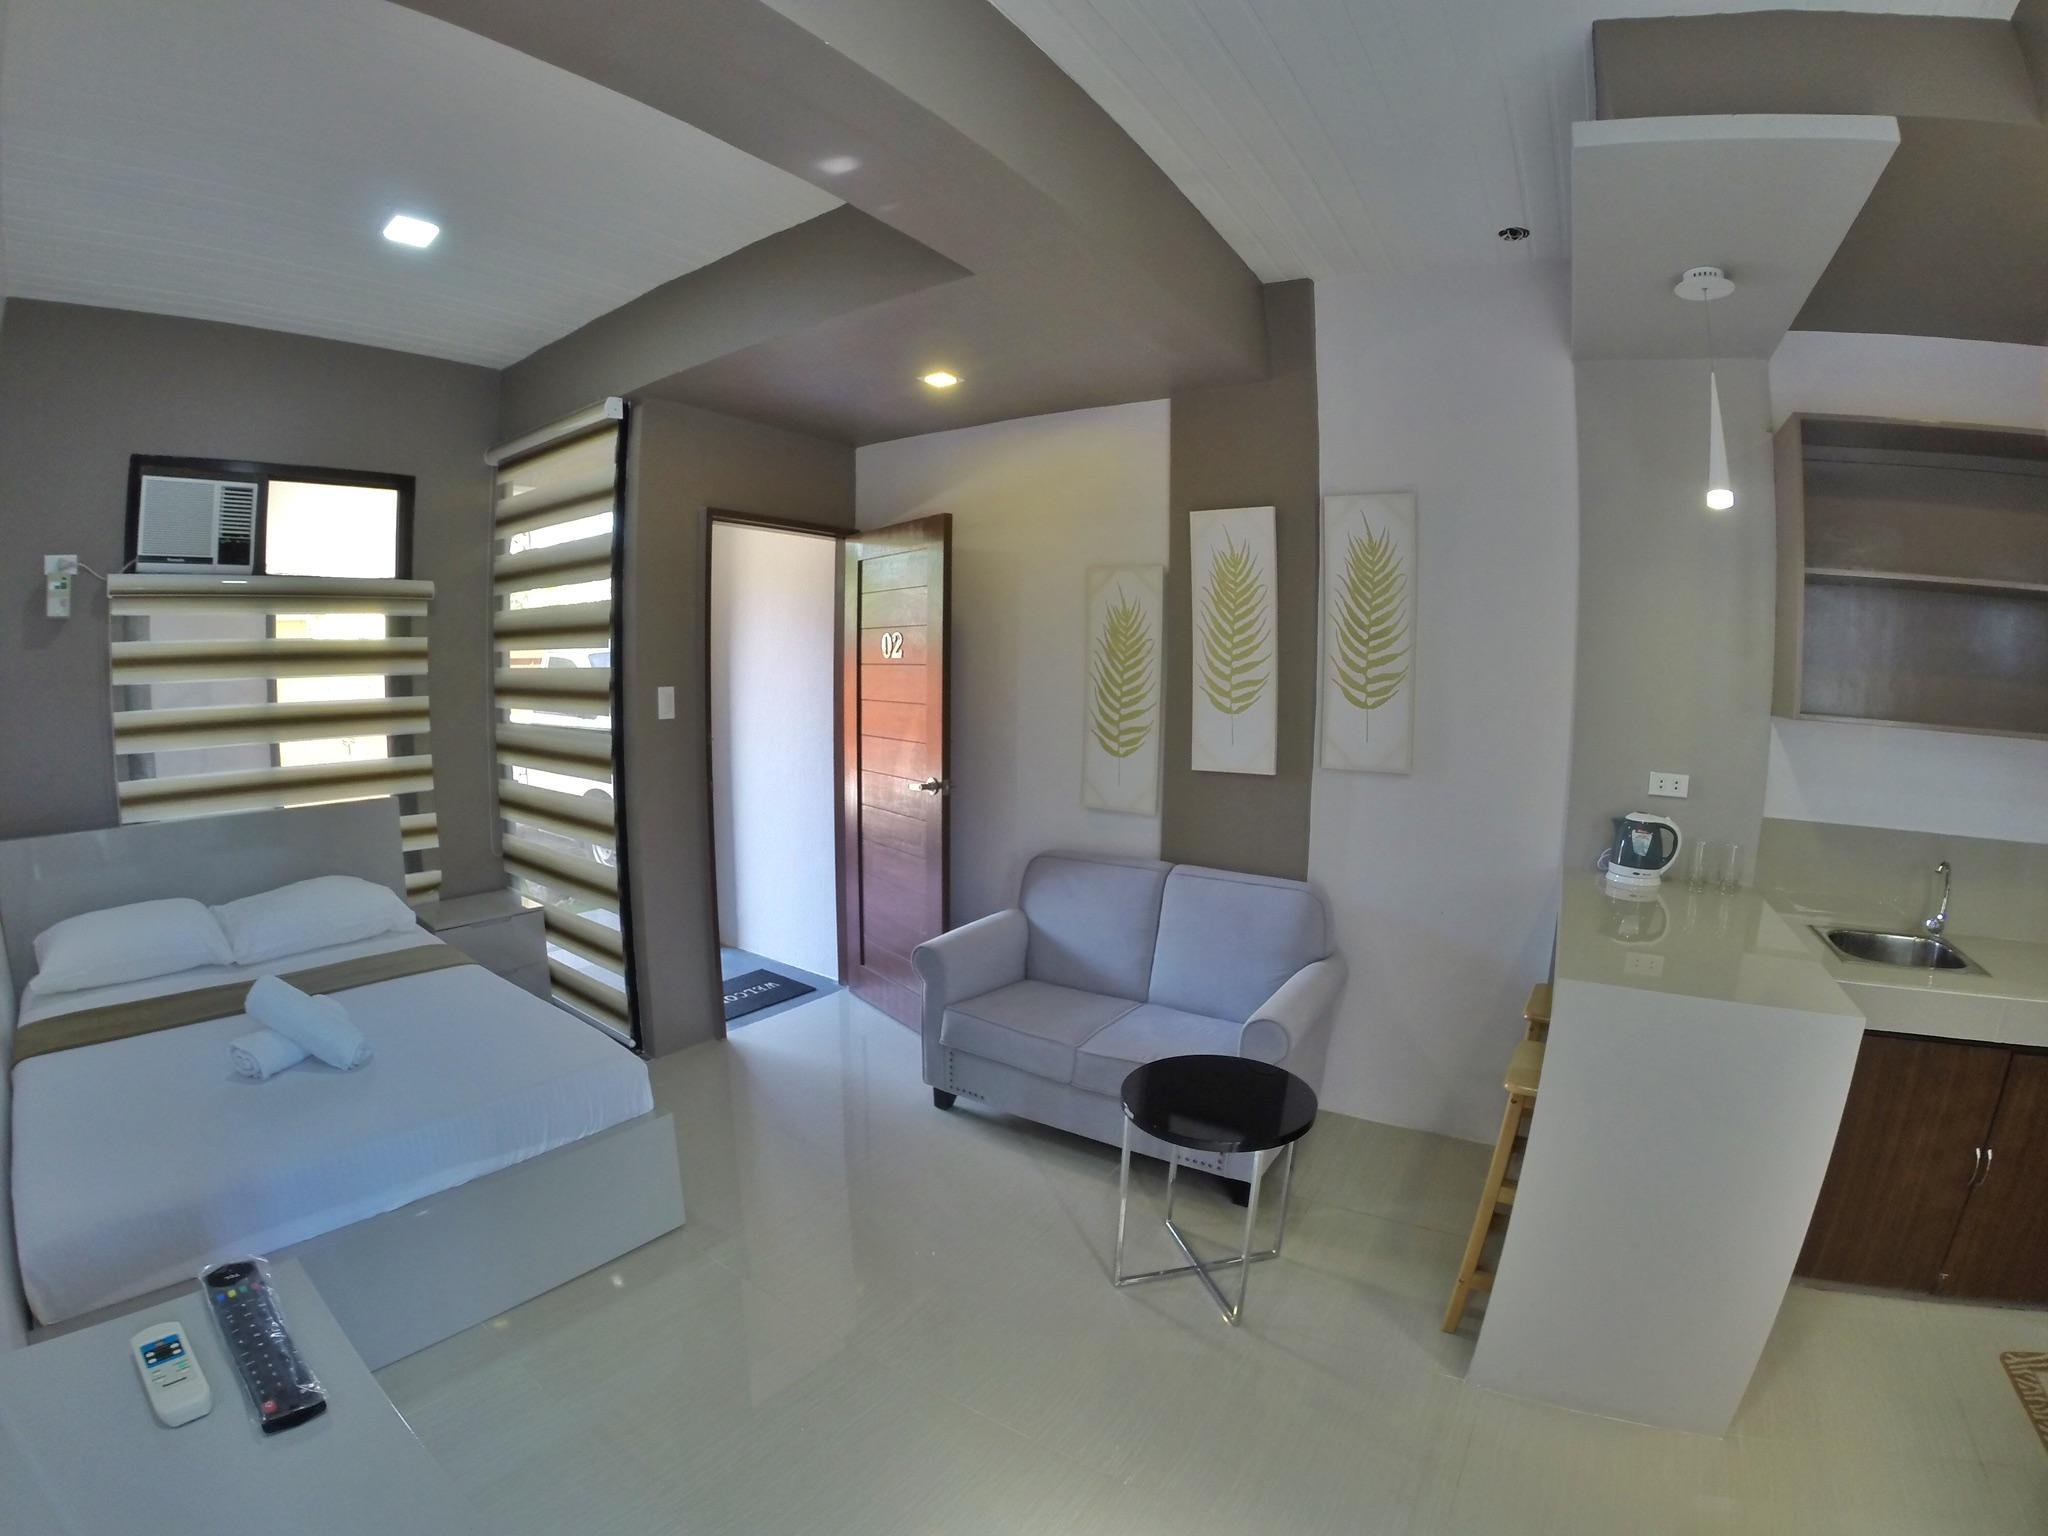 Modern studio suite in the heart of the city - Hotels Information/Map/Reviews/Reservation